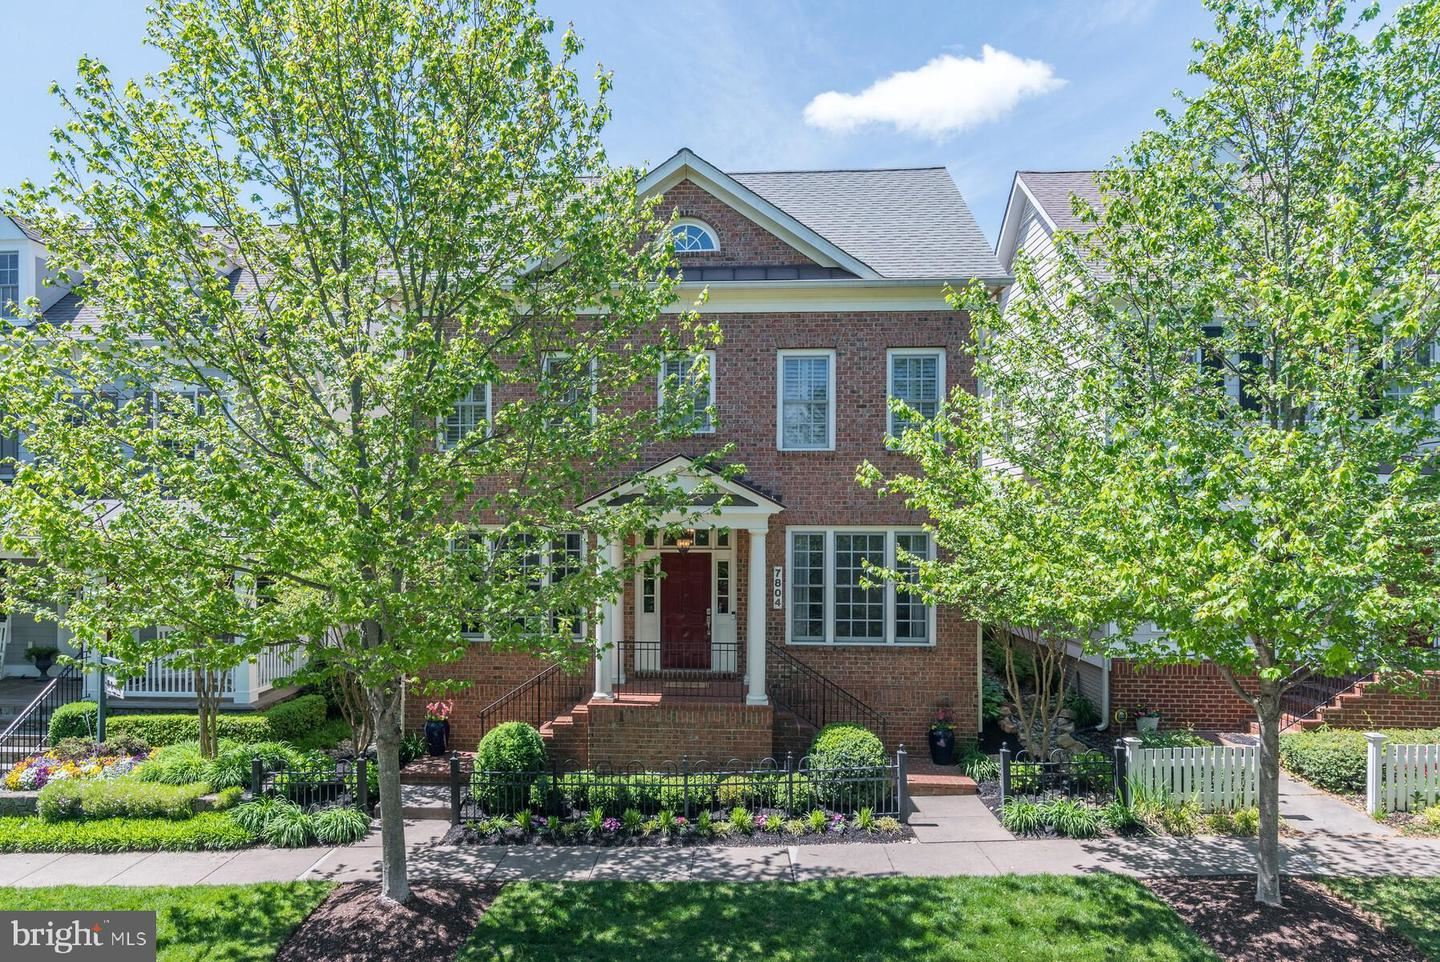 7804 EARLY MORNING ST, Fulton, MD 20759 - MLS#: MDHW293880